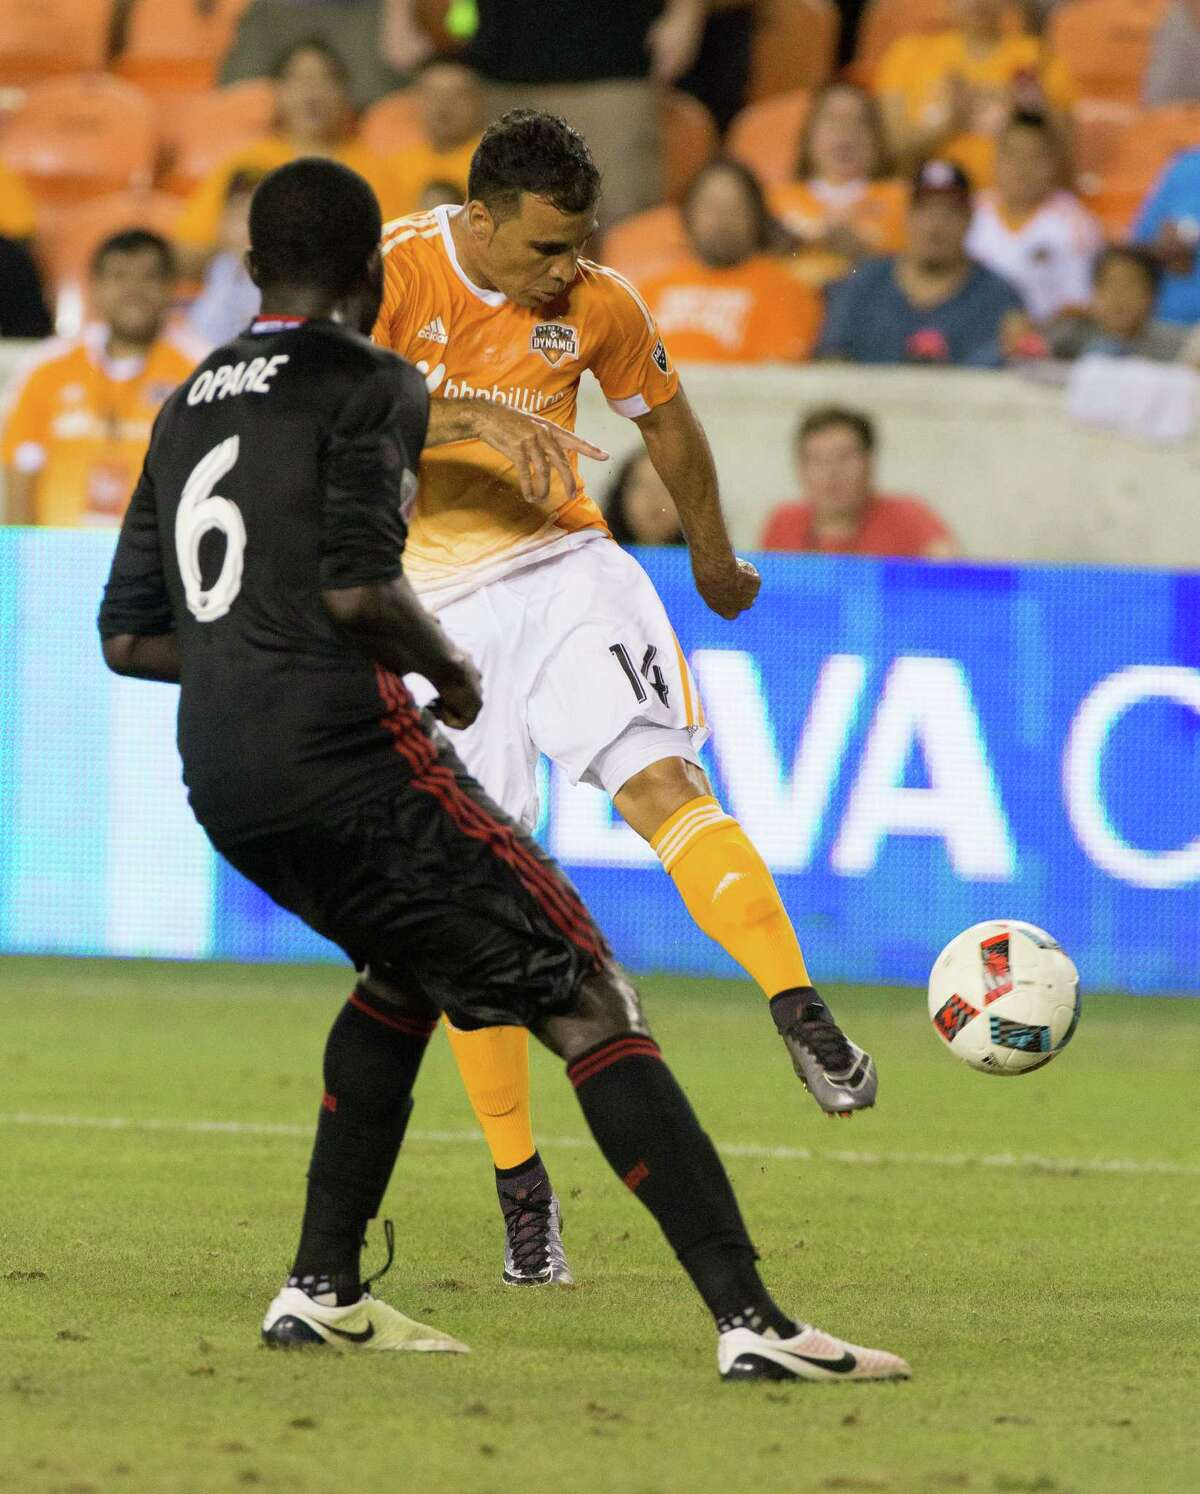 Houston Dynamo midfielder Alex (14) comes up short from kicking a goal in front of D.C. United defender Kofi Opare (6) during the second half of action between the Houston Dynamo and the D.C. United during a soccer game at BBVA Compass, Saturday, June 18, 2016, in Houston. Houston Dynamo tied D.C. United 0-0. ( Juan DeLeon / for the Houston Chronicle )